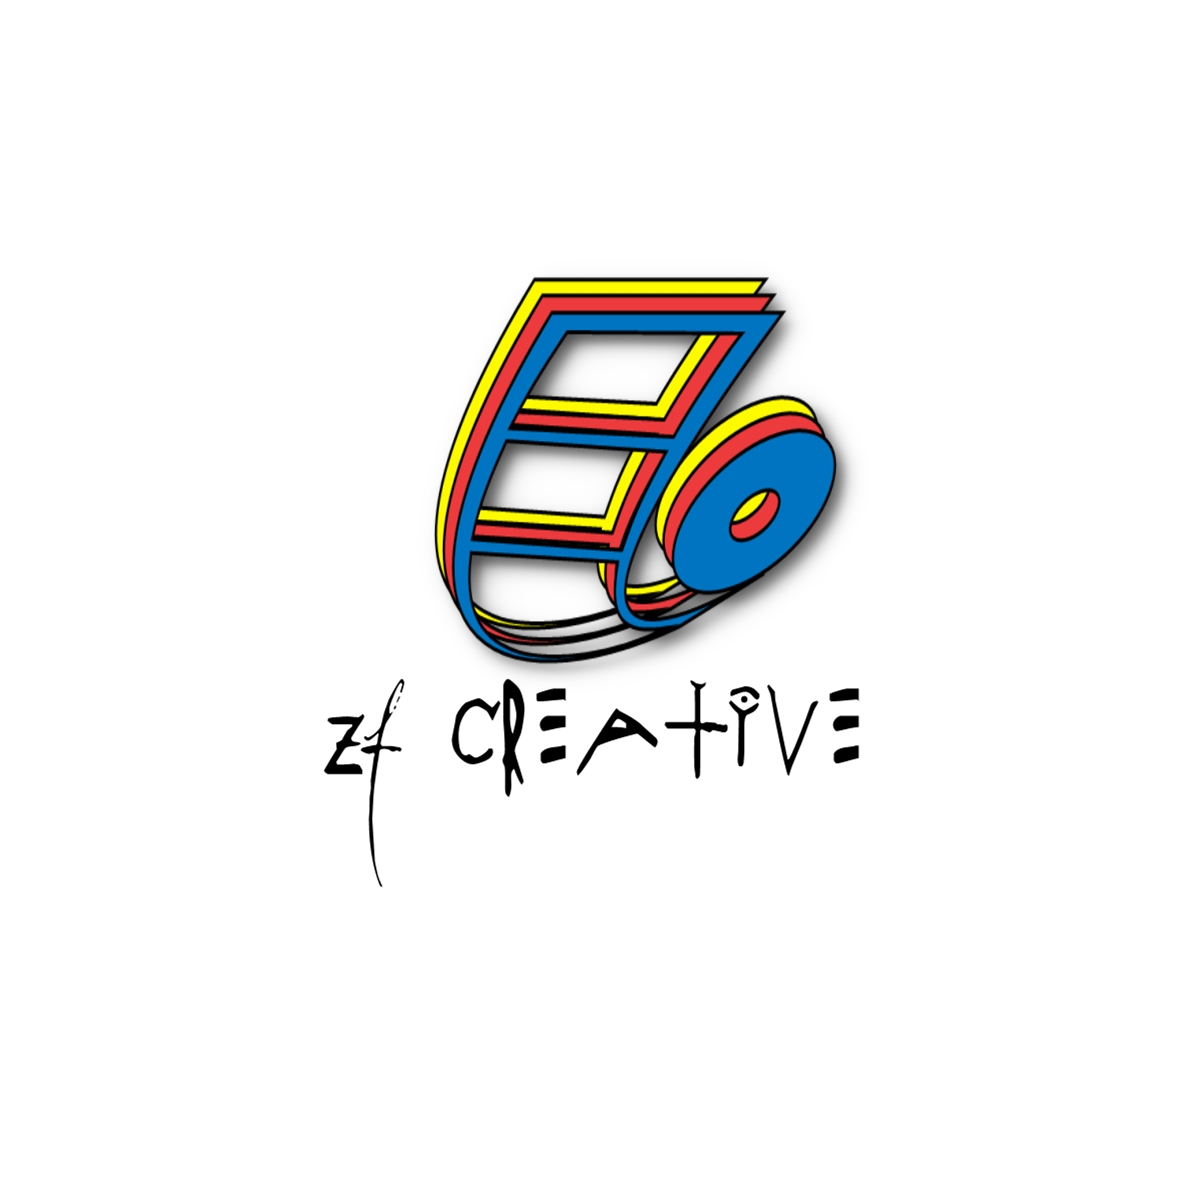 Logo Design by Joseph calunsag Cagaanan - Entry No. 52 in the Logo Design Contest ZF Creative Logo Contest.